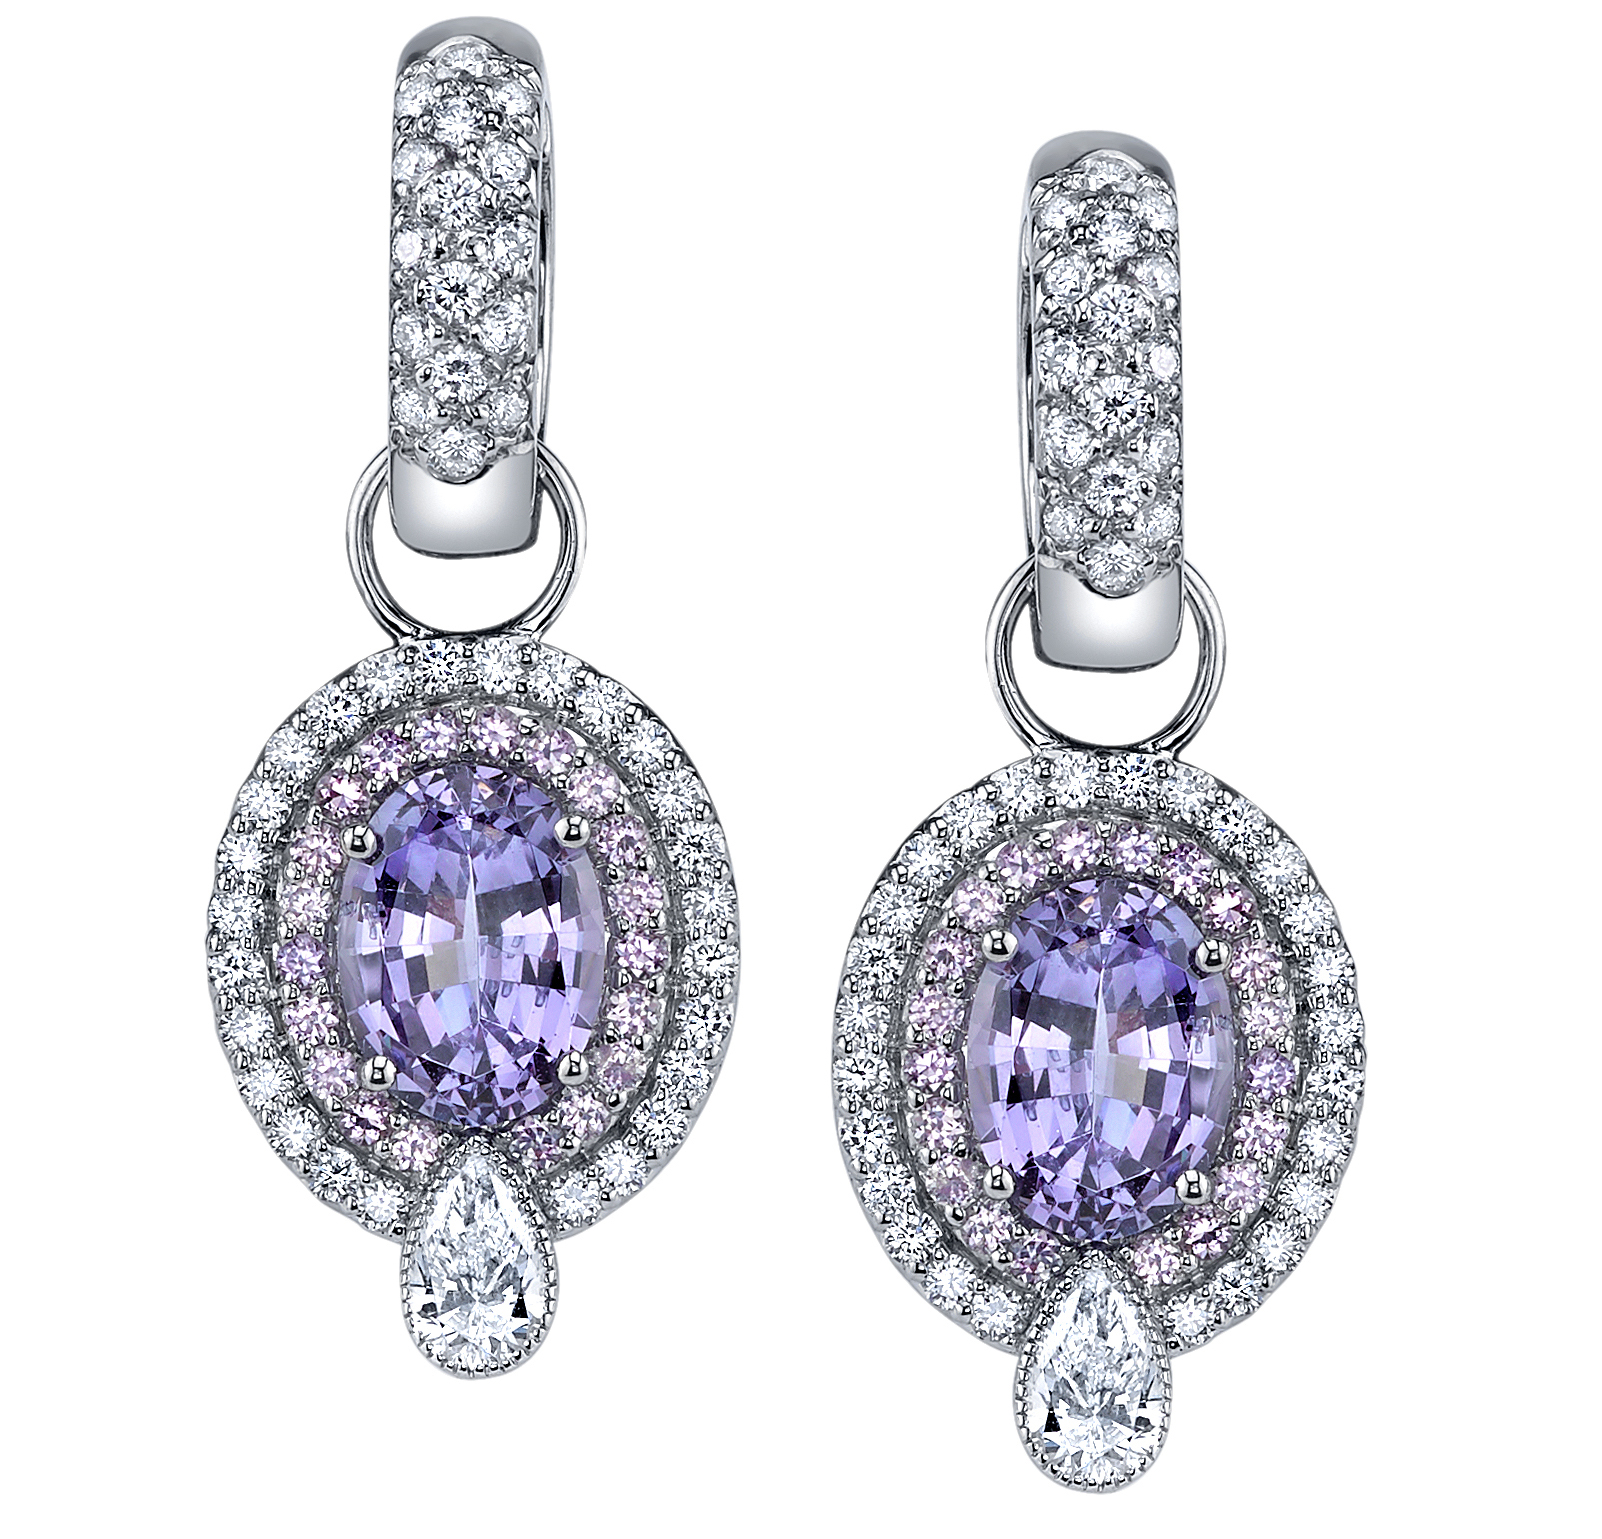 Erica Courtney Pia earrings in lavender Spinel | JCK On Your Market